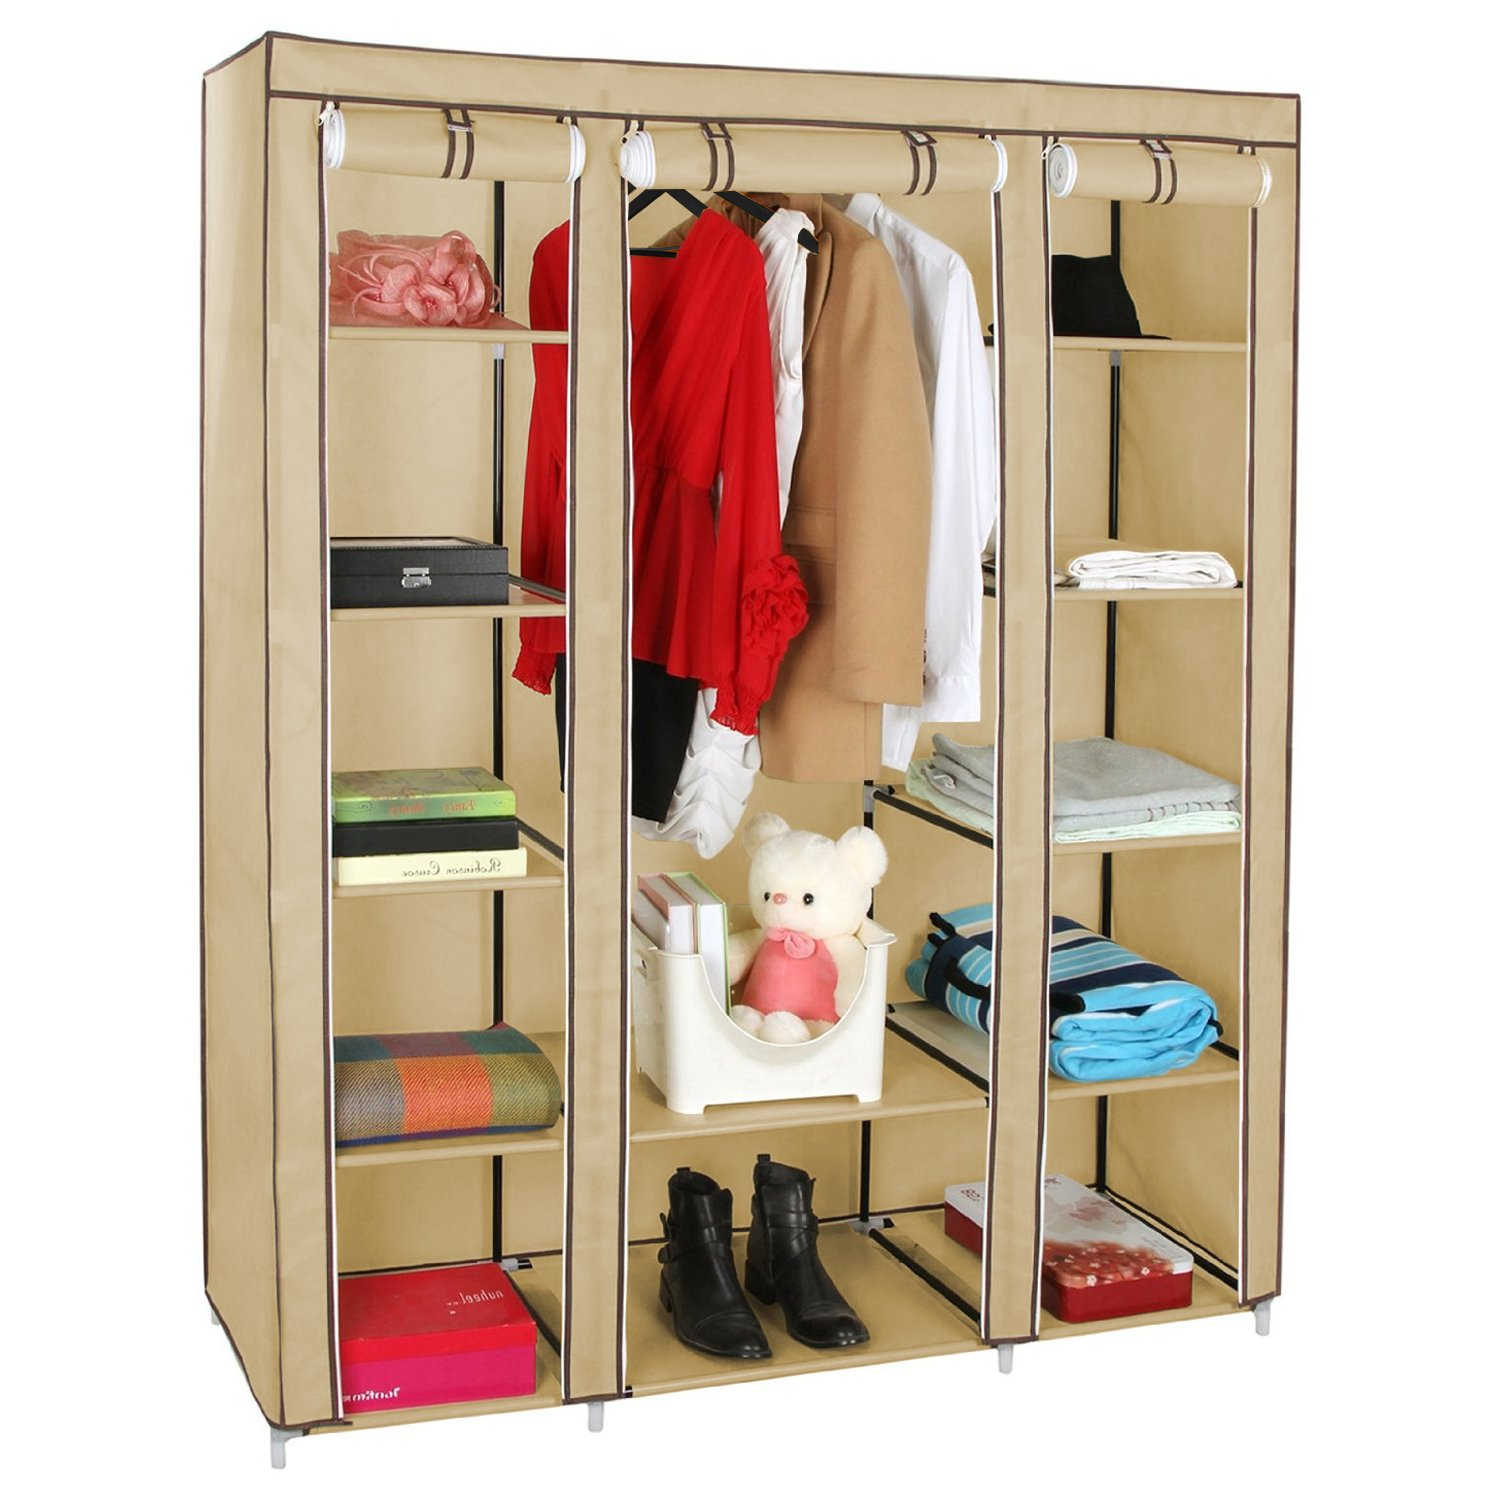 Kendan Ashland Beige - Triple Fabric Canvas Wardrobe Closet Storage Shelves Organiser Cupboard Hanging Rail with Free Coat Hangers